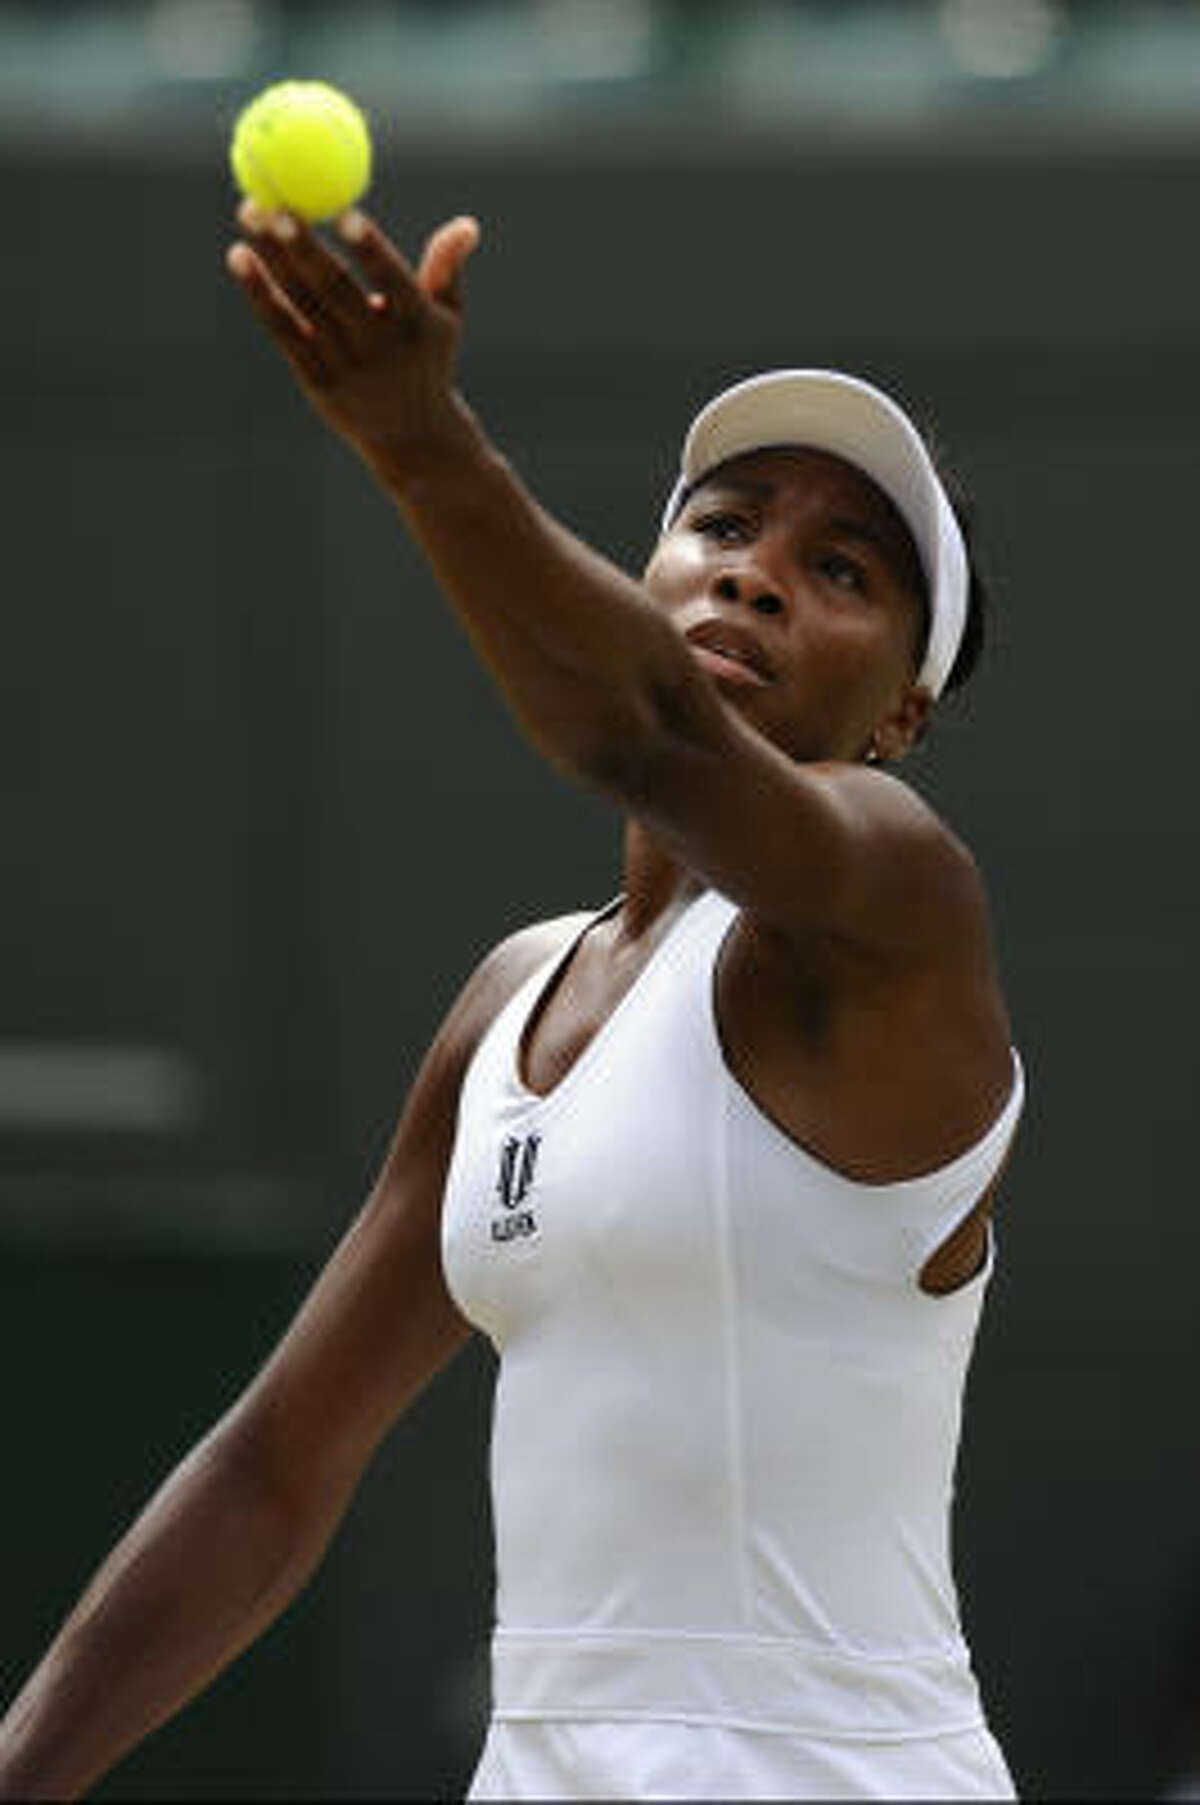 Five-time champion Venus Williams advanced to the quarterfinals at Wimbledon after Ana Ivanovic had to quit her match because of a left thigh. Williams, the No. 3 seed, was leading 6-1, 0-1 when Ivanovic had to quit.